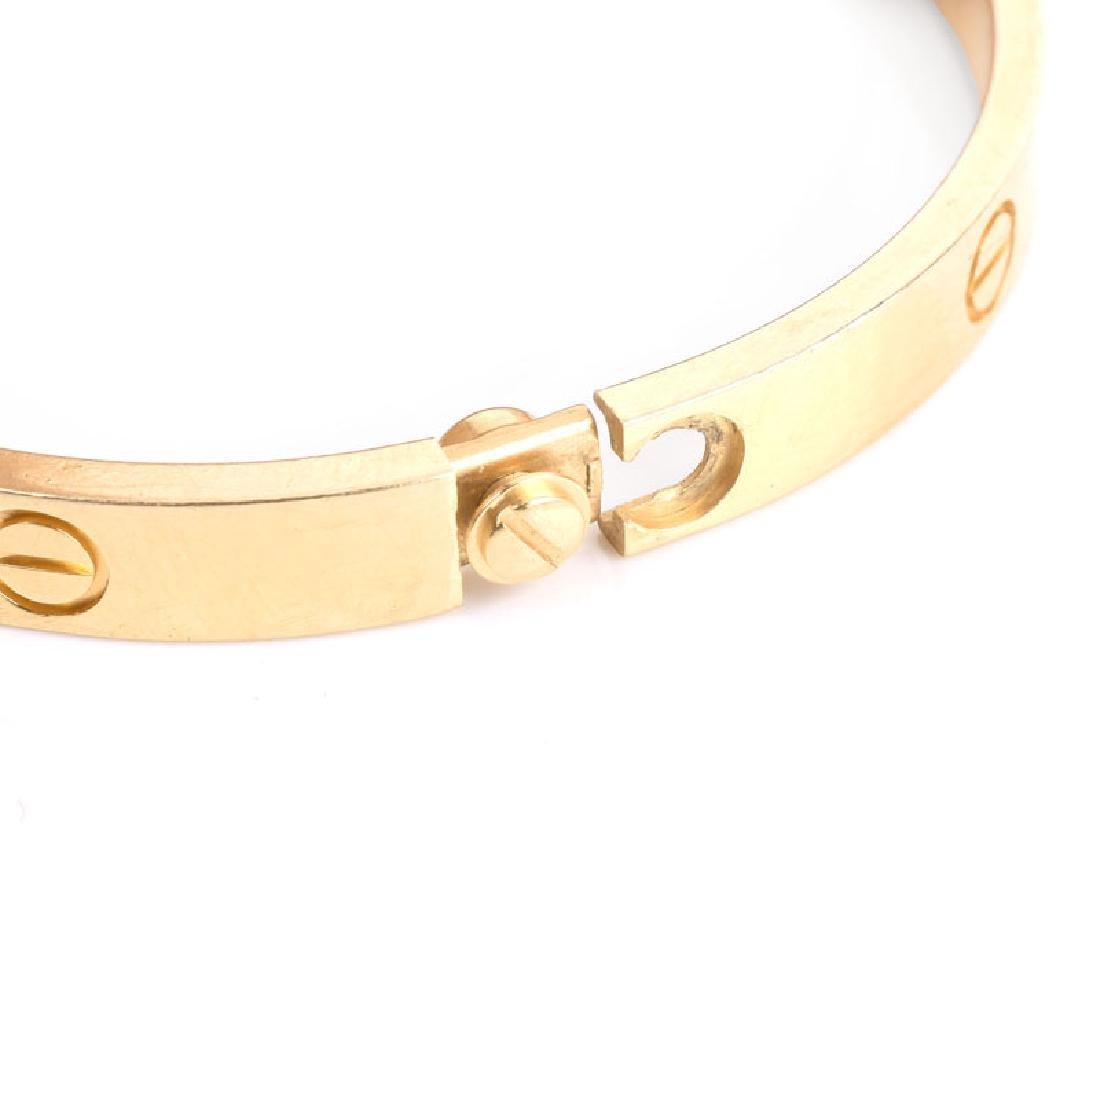 Circa 2014 Cartier 18 Karat Yellow Gold Love Bracelet - 5